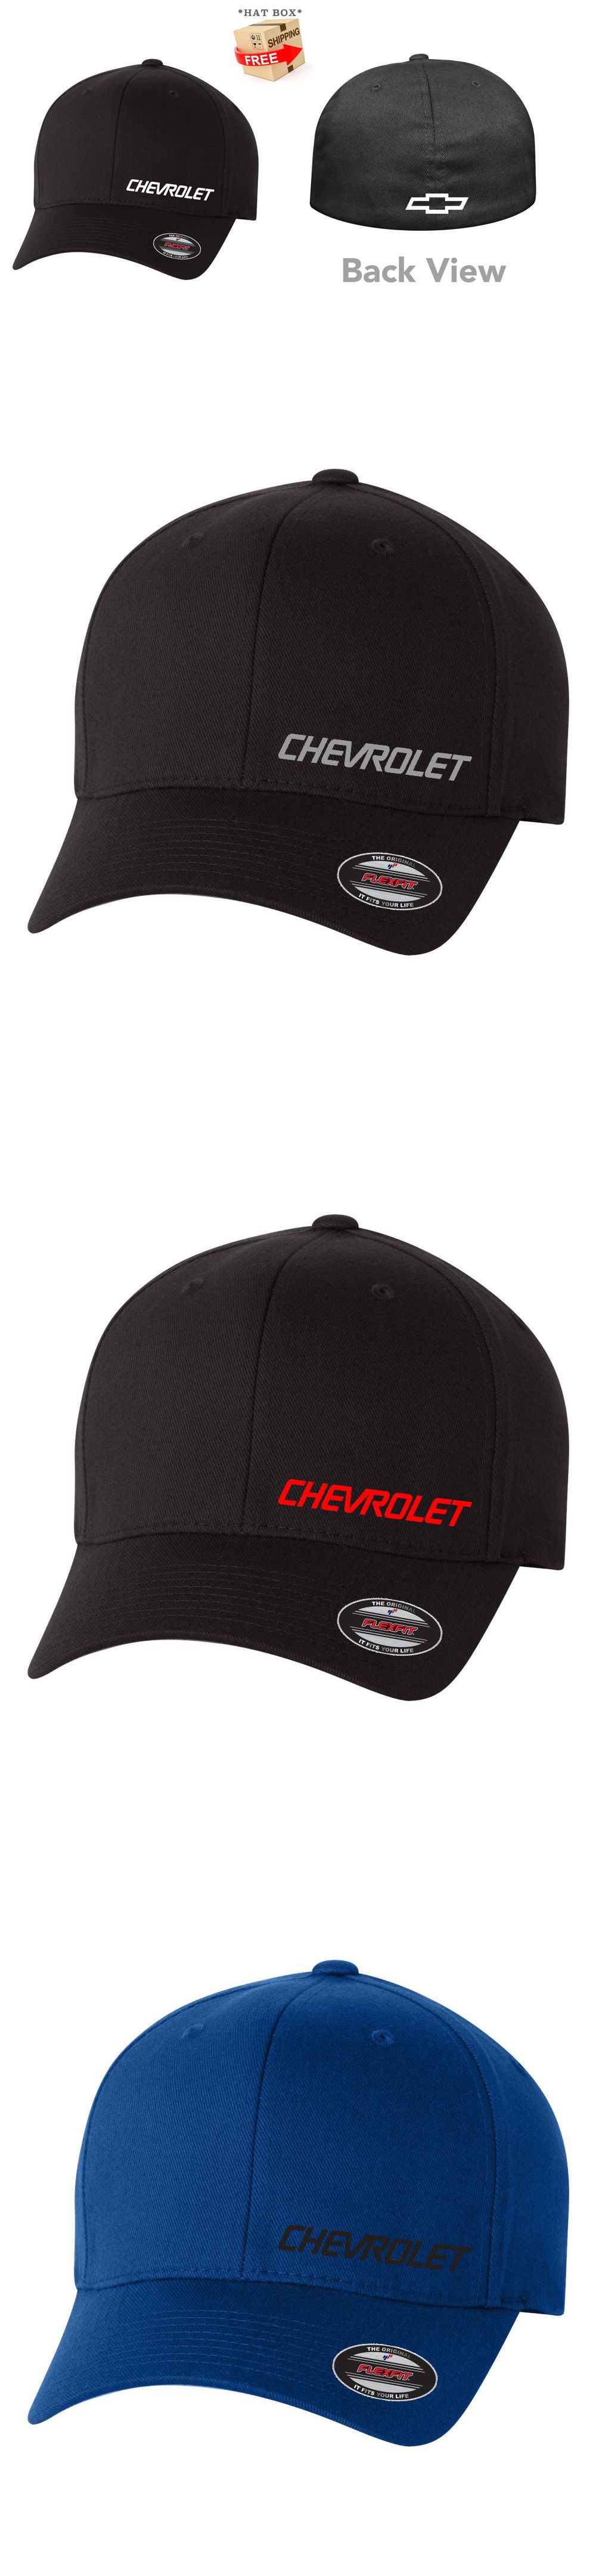 42bb08c77 Hats 52365: Chevrolet Chevy Motor Flex Fit Hat ---Free Shipping ...